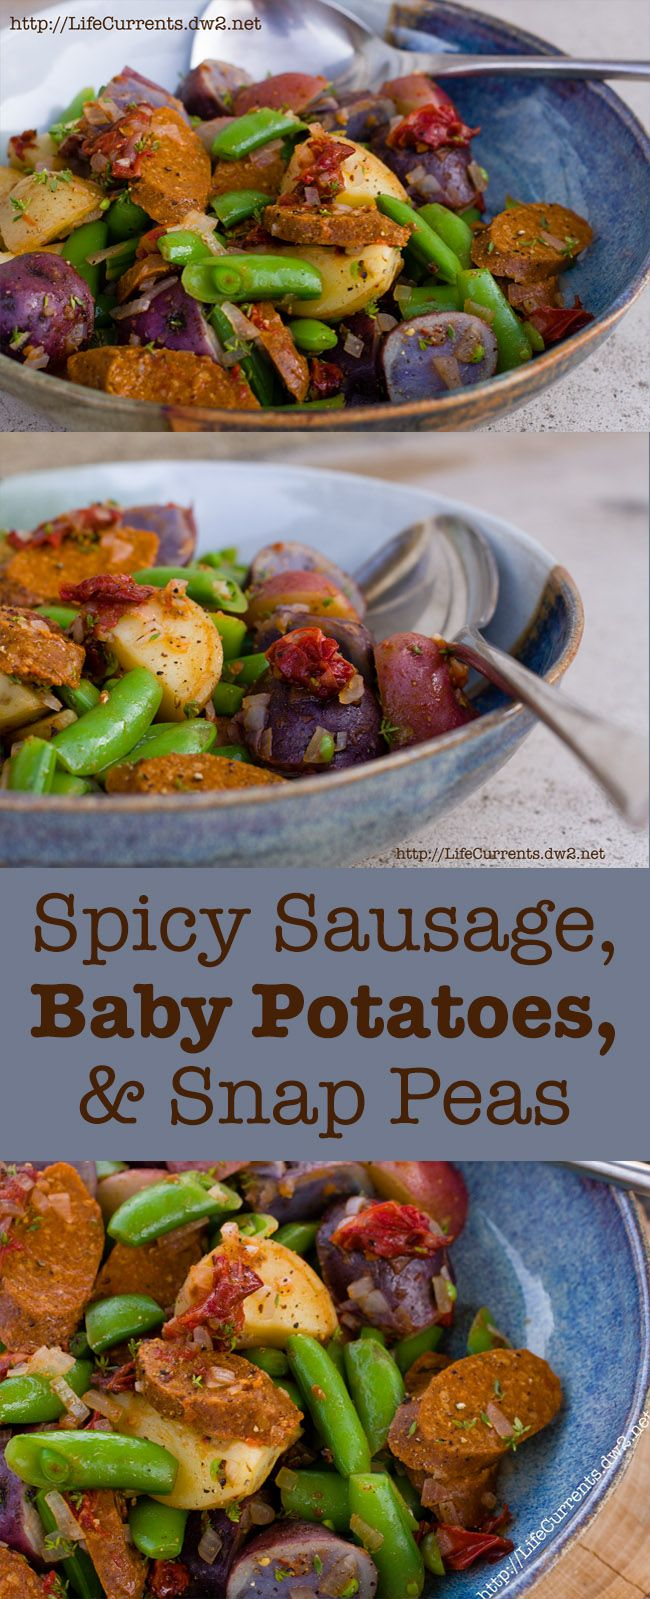 Make everyone in your family happy with this great dinner! Spicy Sausage, Baby Potatoes, and Snap Peas by Life Currents; you can use veggie sausage to make it vegan, or any kind of sausage that pleases you.